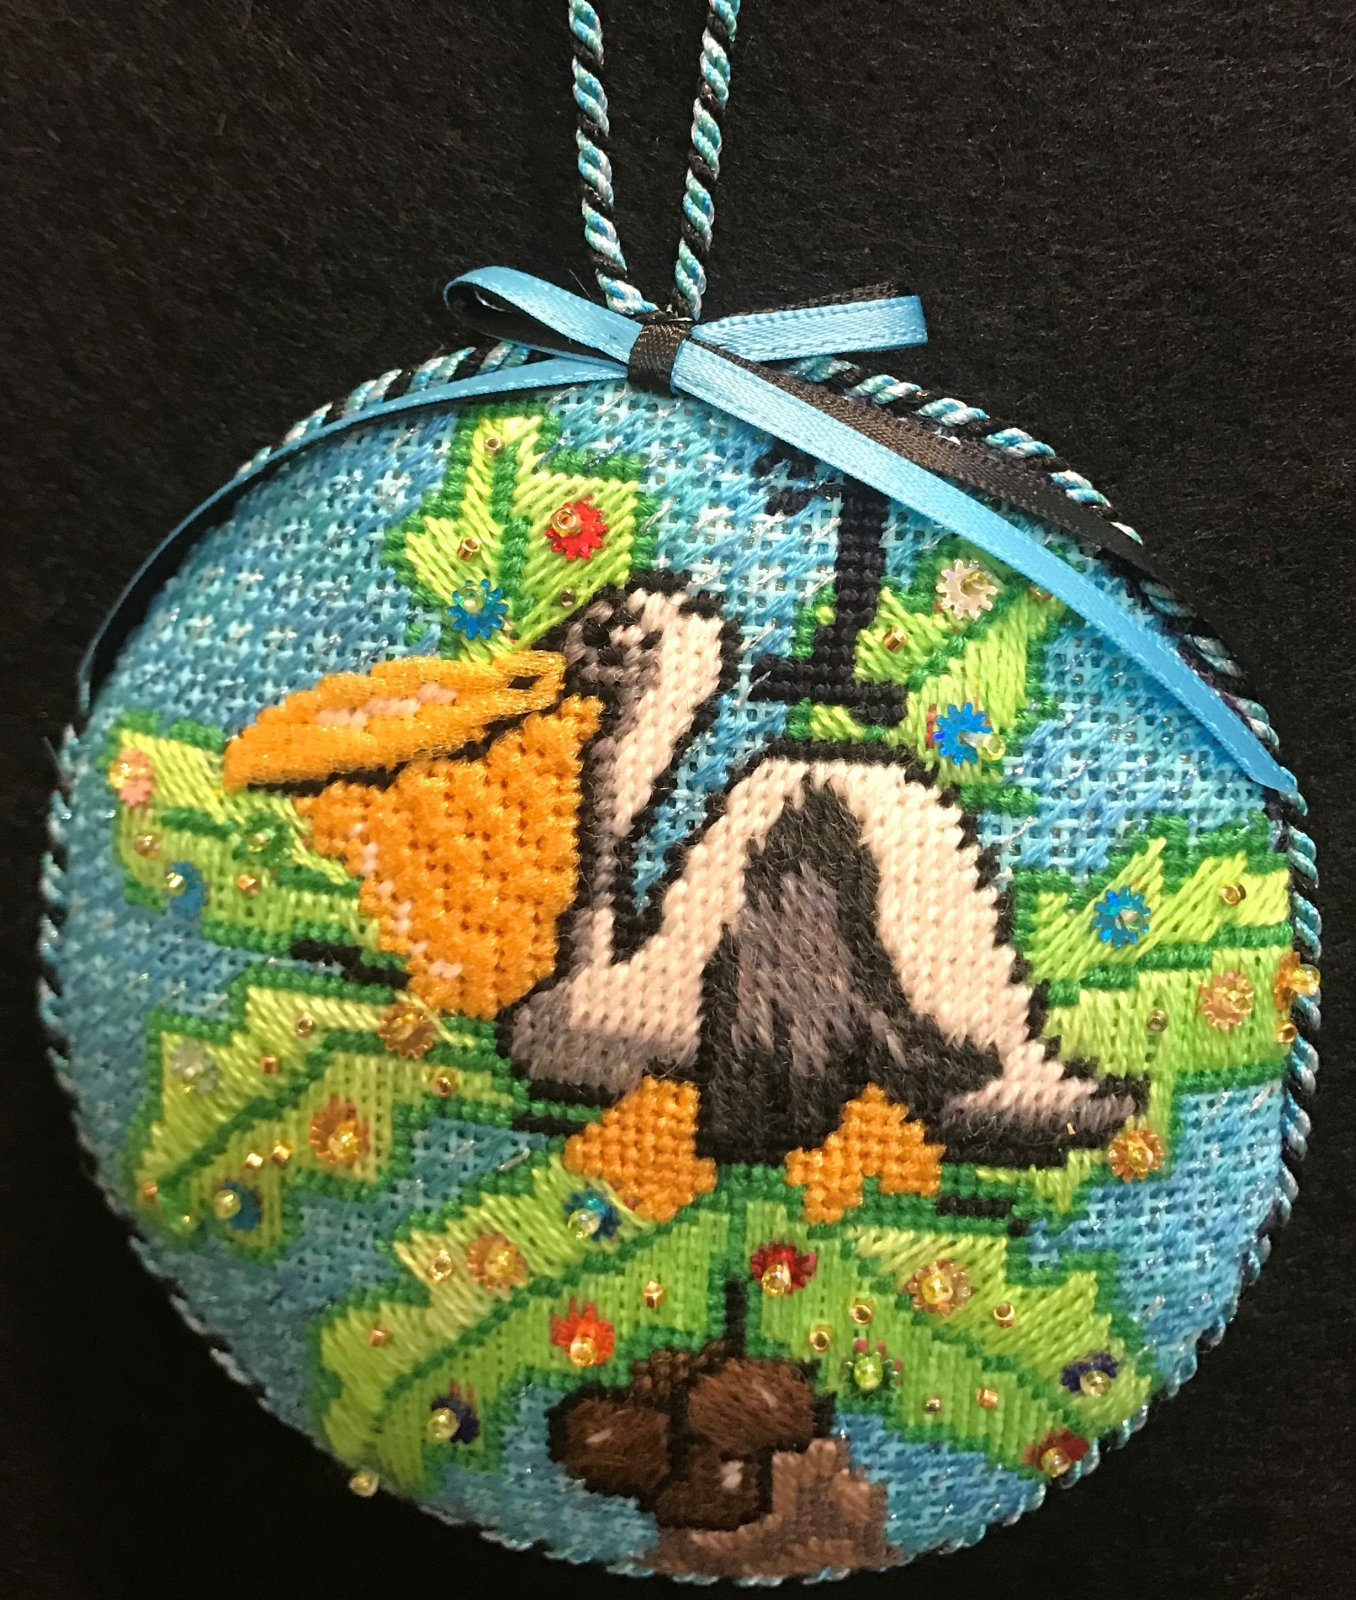 #1 Pelican Ornament - stitched by Stacey G.